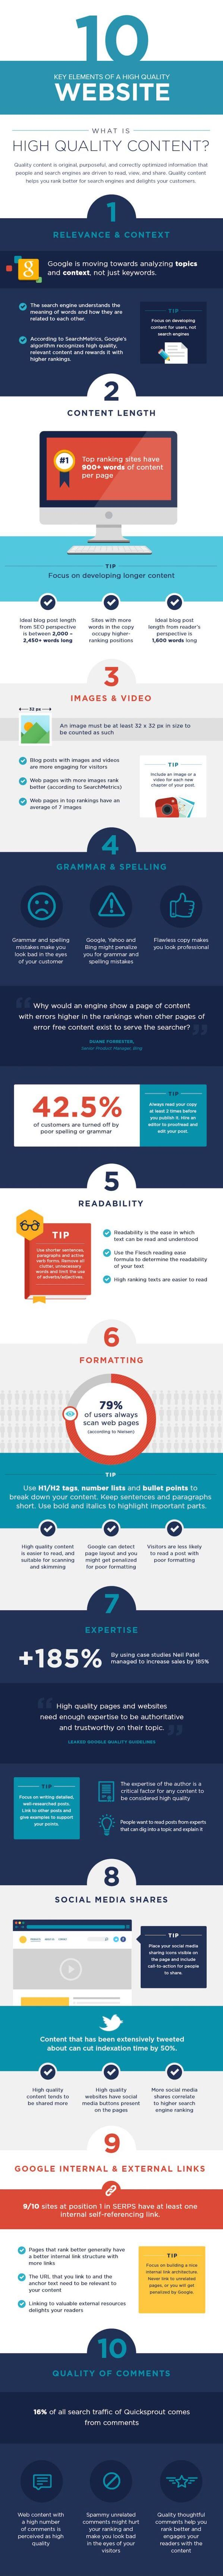 10 Key Elements of a high quality website image